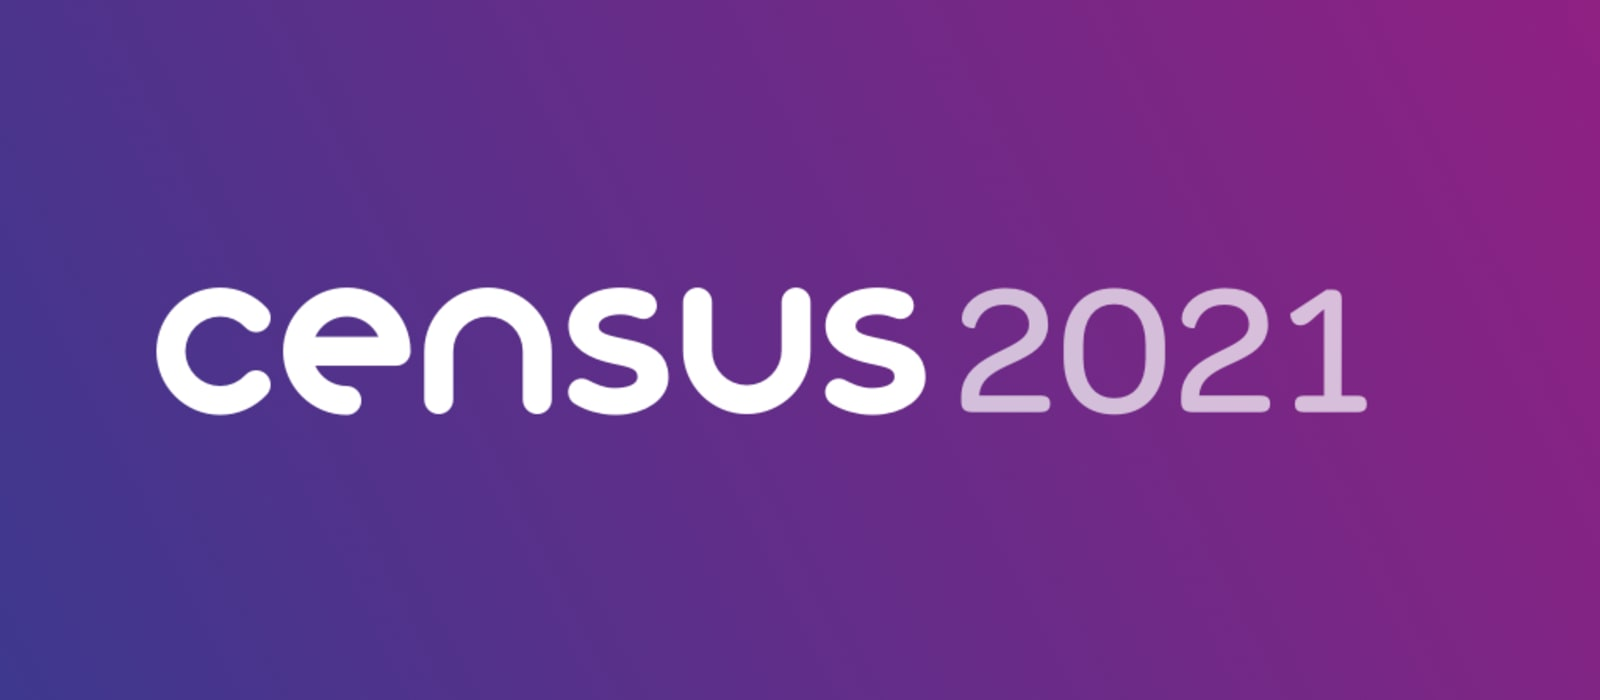 Deaf Hub Wales is OPEN for the Census 2021